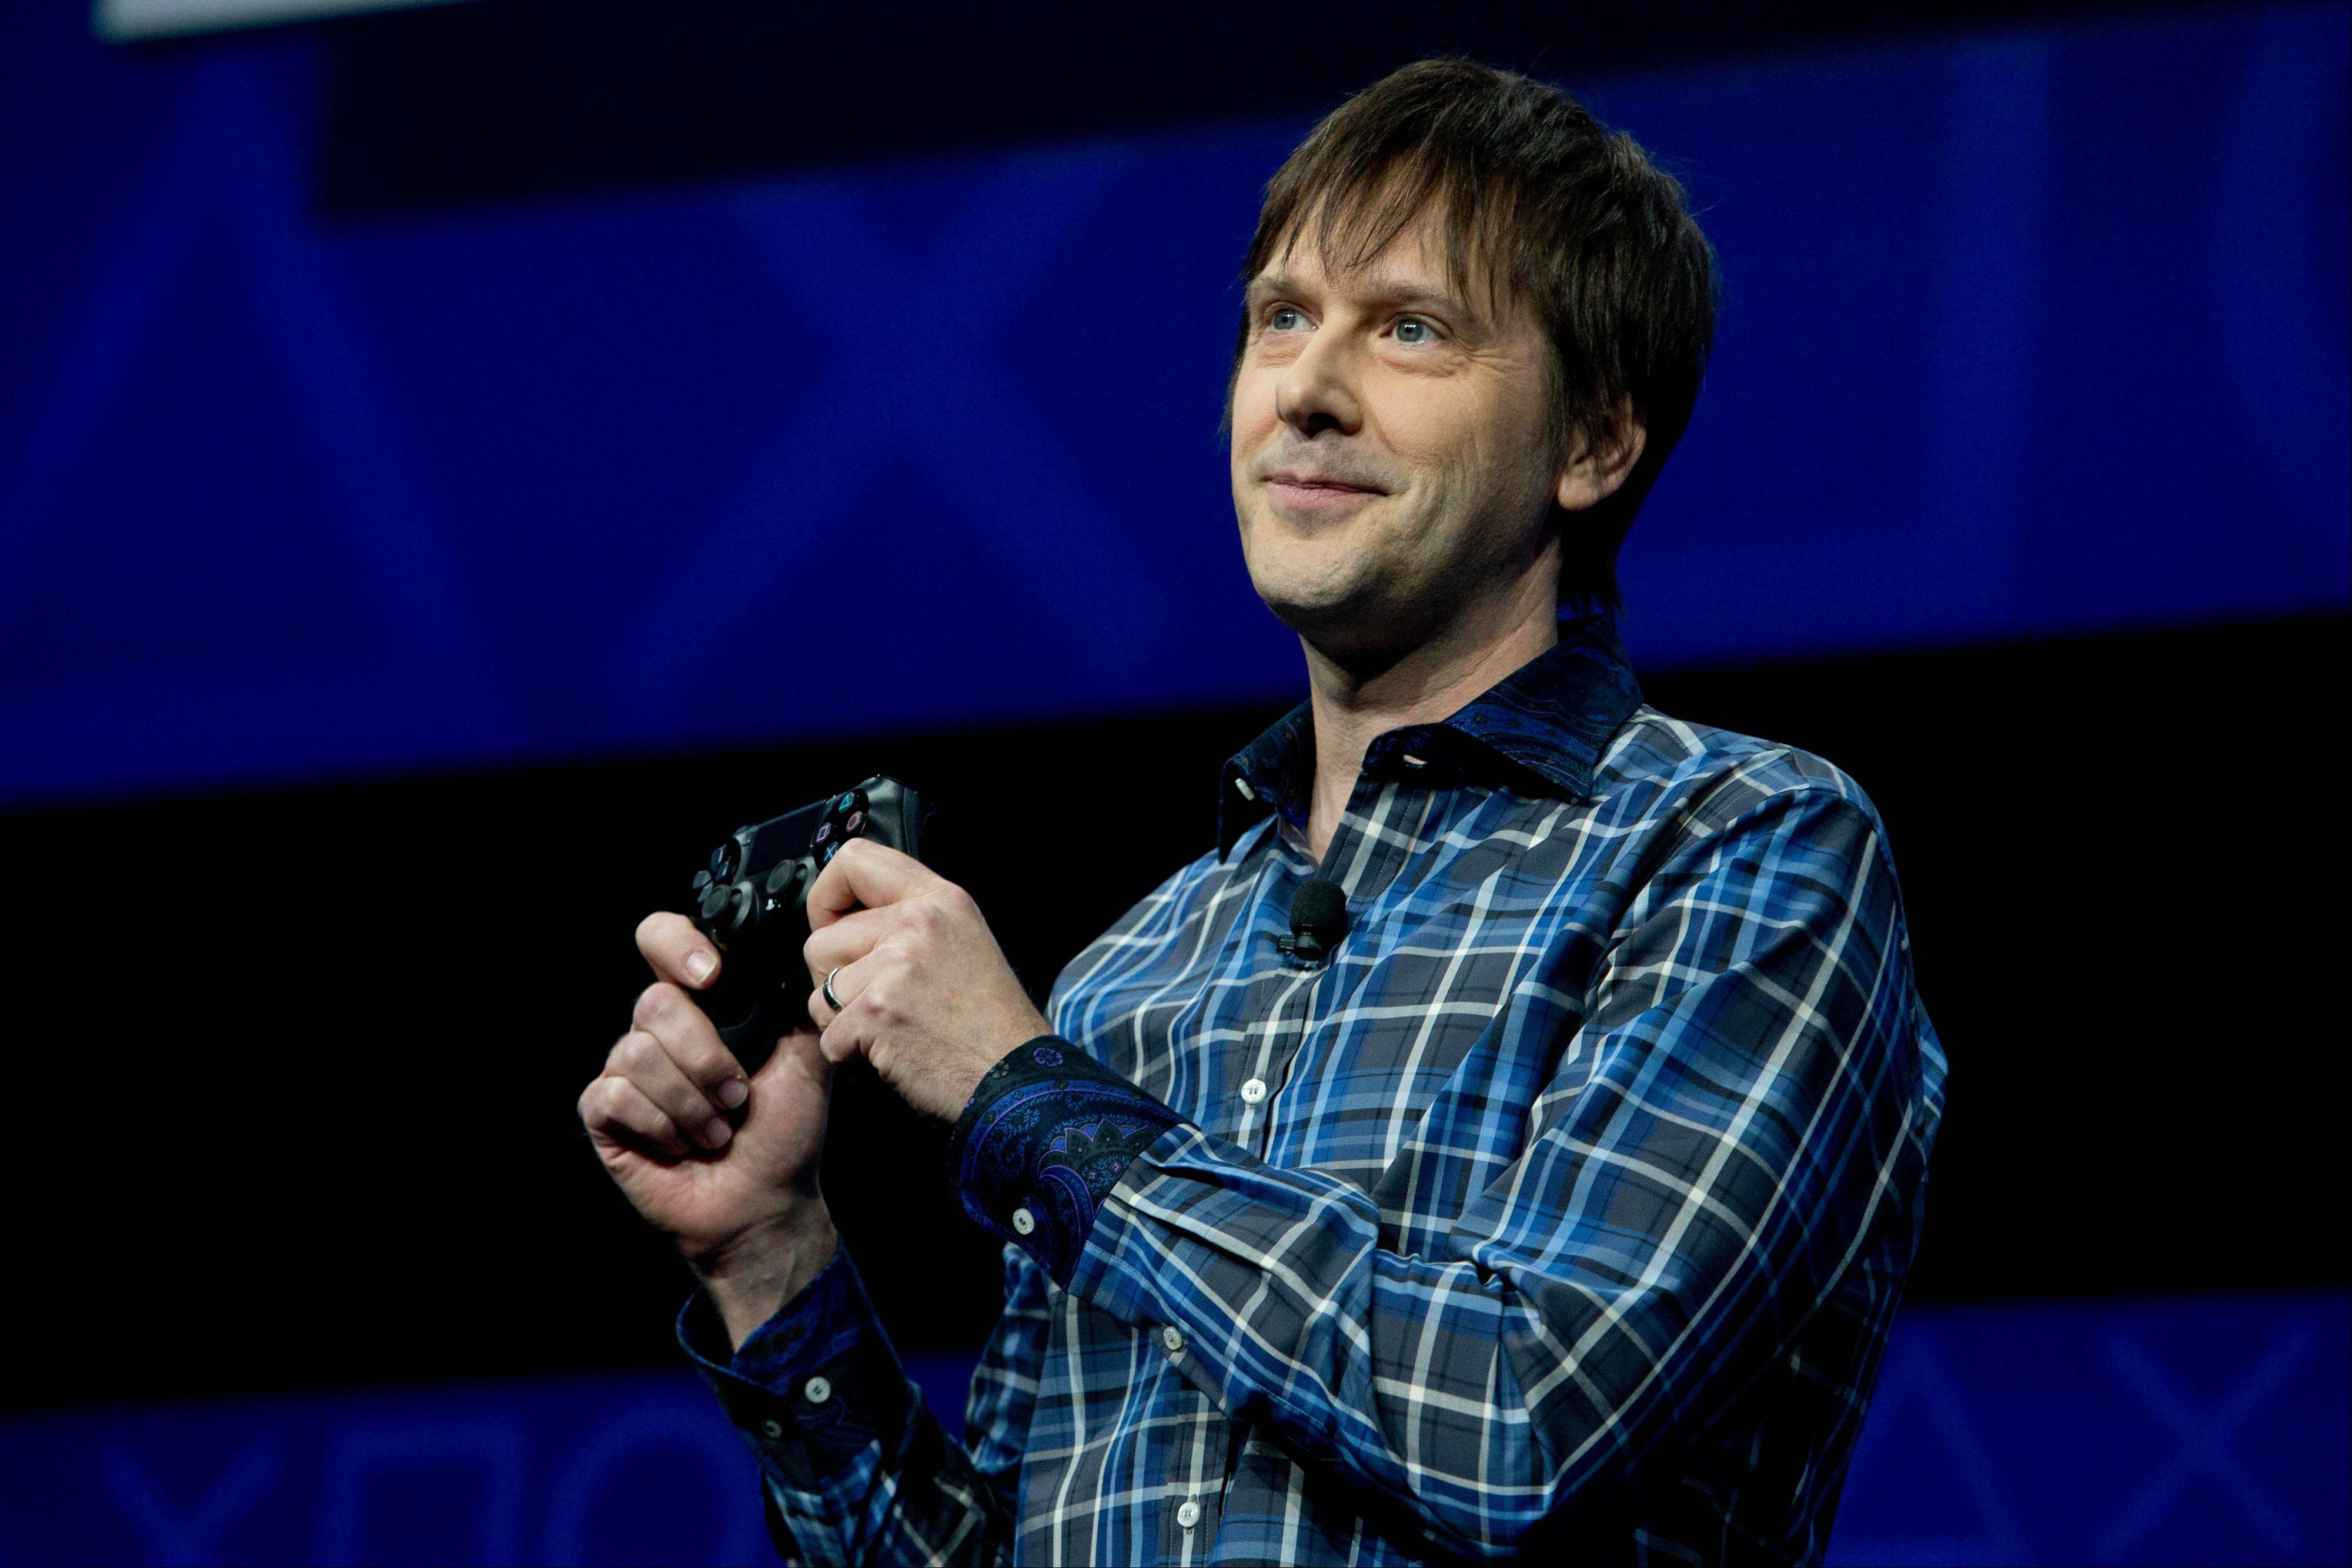 In this Feb. 20, 2013 file photo, Mark Cerny, lead system architect for the Sony Playstation 4 speaks during an event to announce the new video game console, in New York.